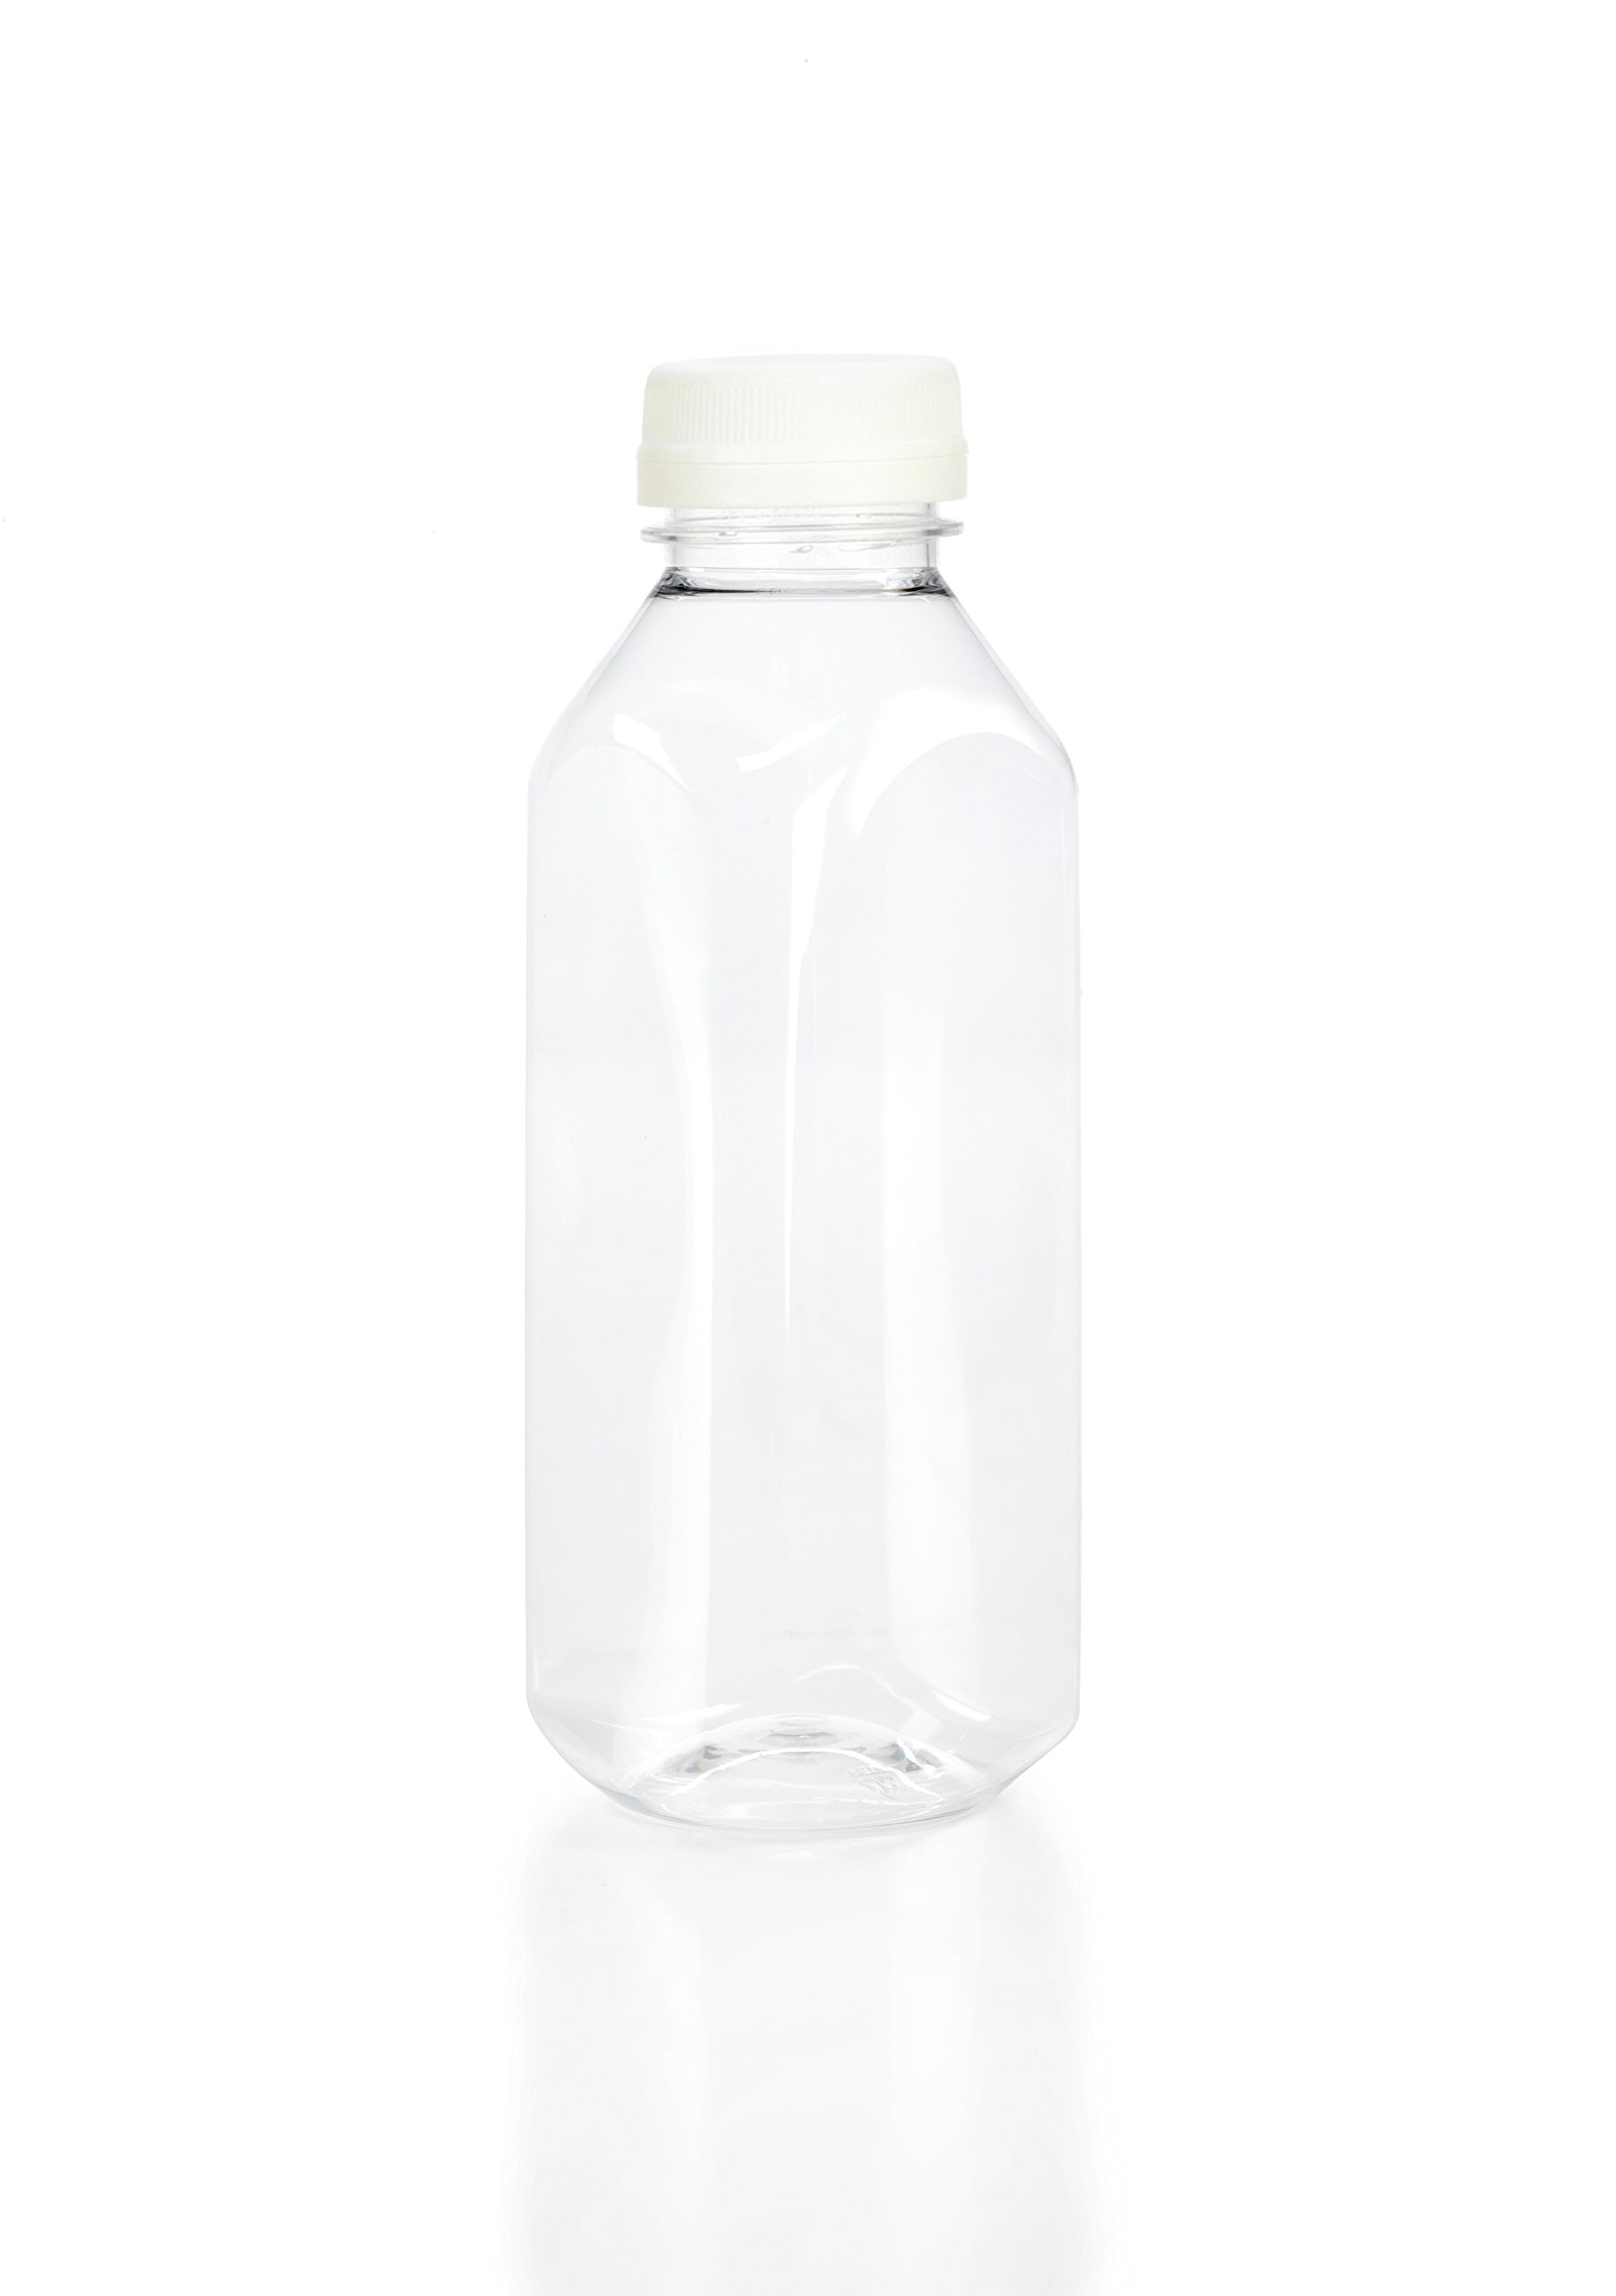 (12) 16 oz. Clear Food Grade Plastic Juice Bottles Square with White Caps 12/Pack